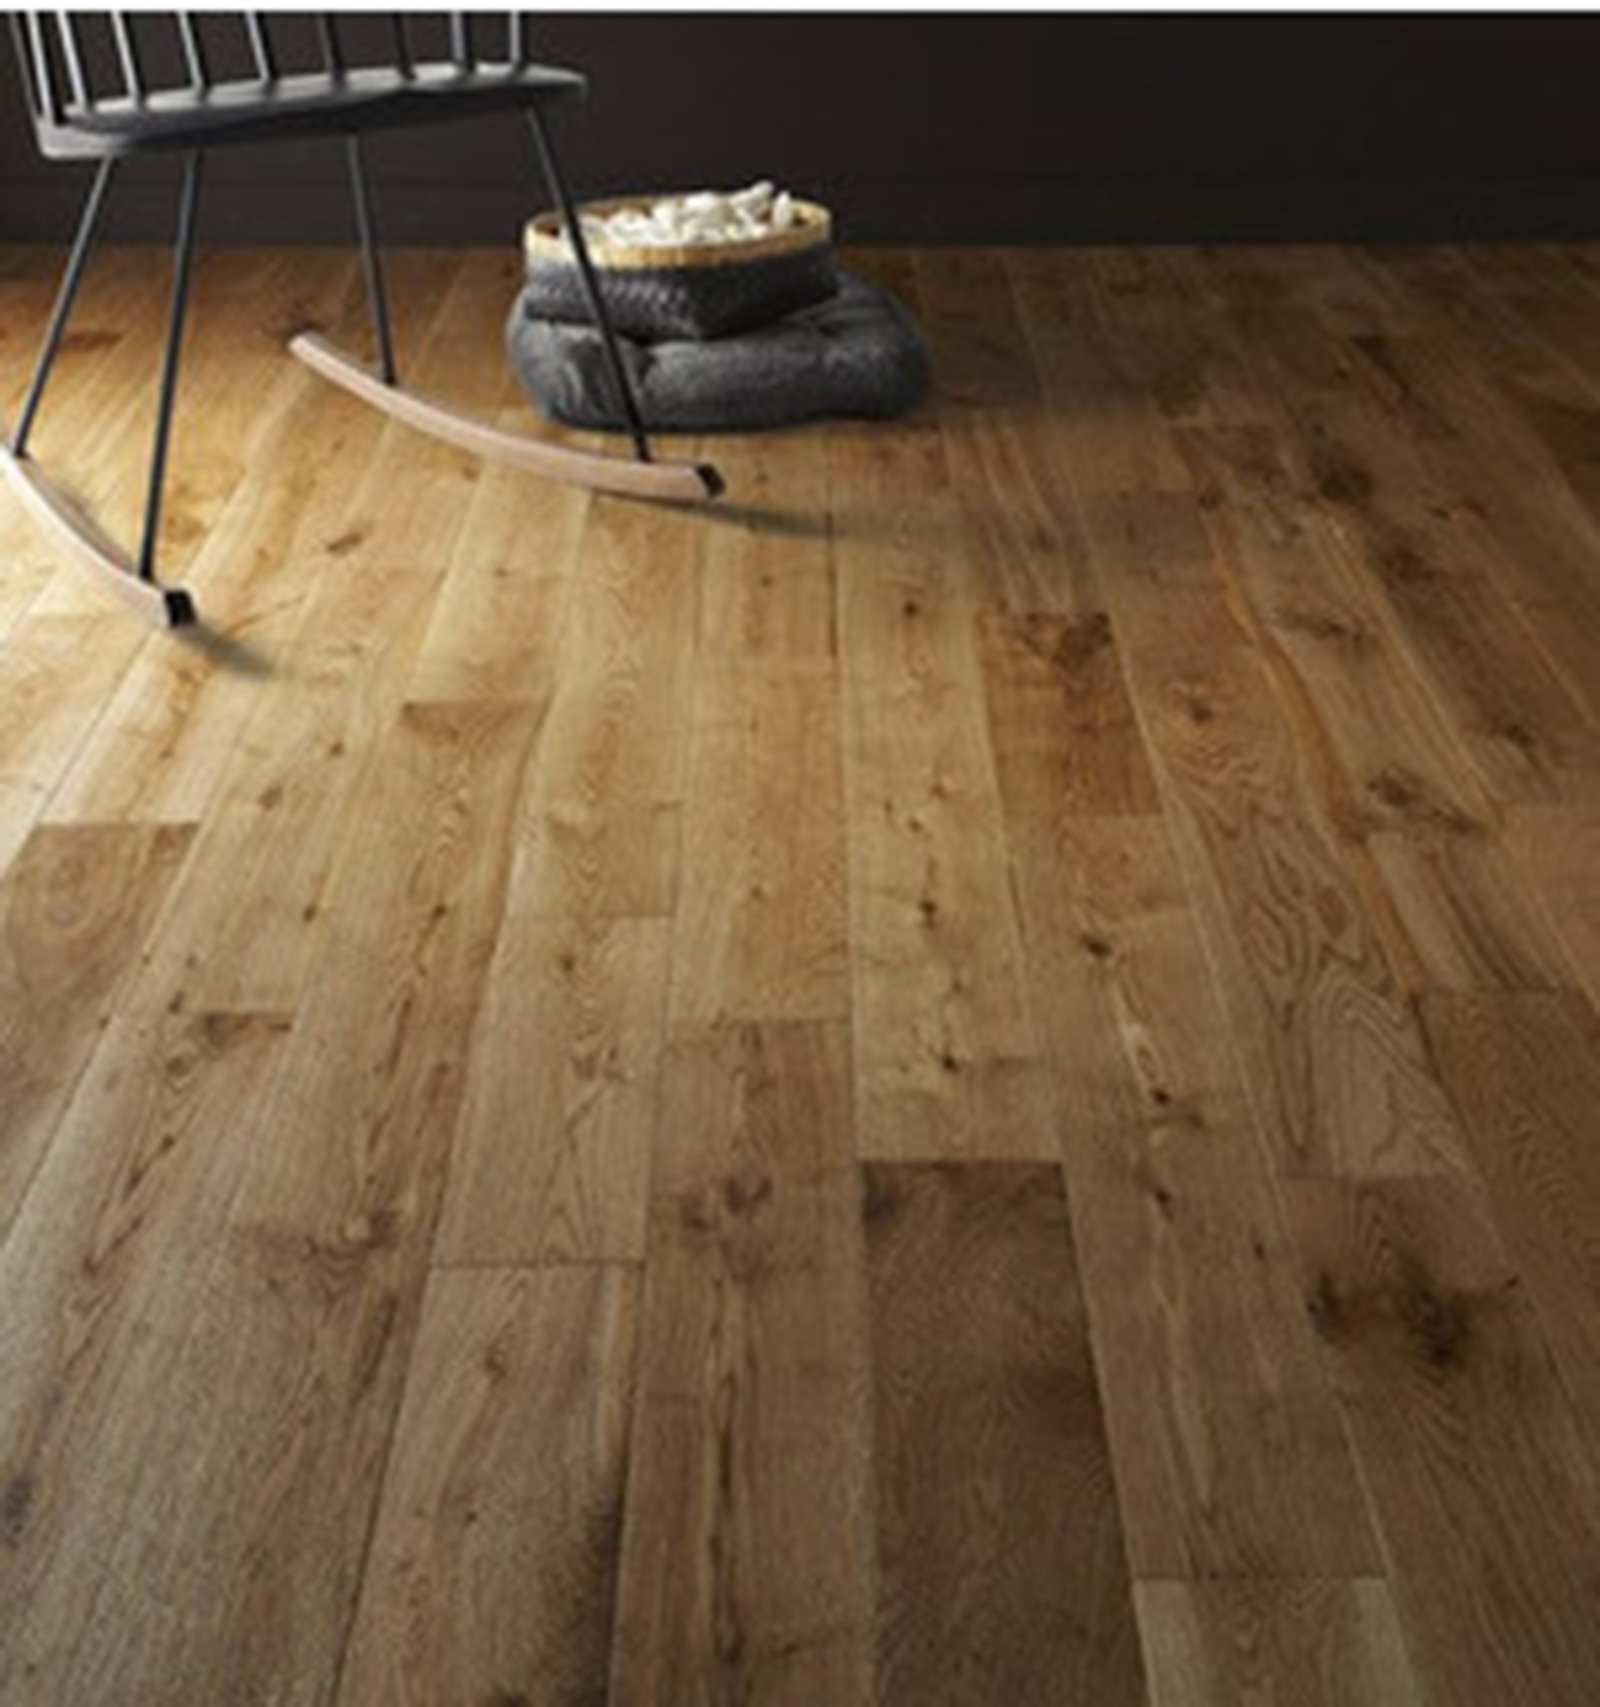 Favori Un sol en parquet : quels types de pose ? - Viving CG11